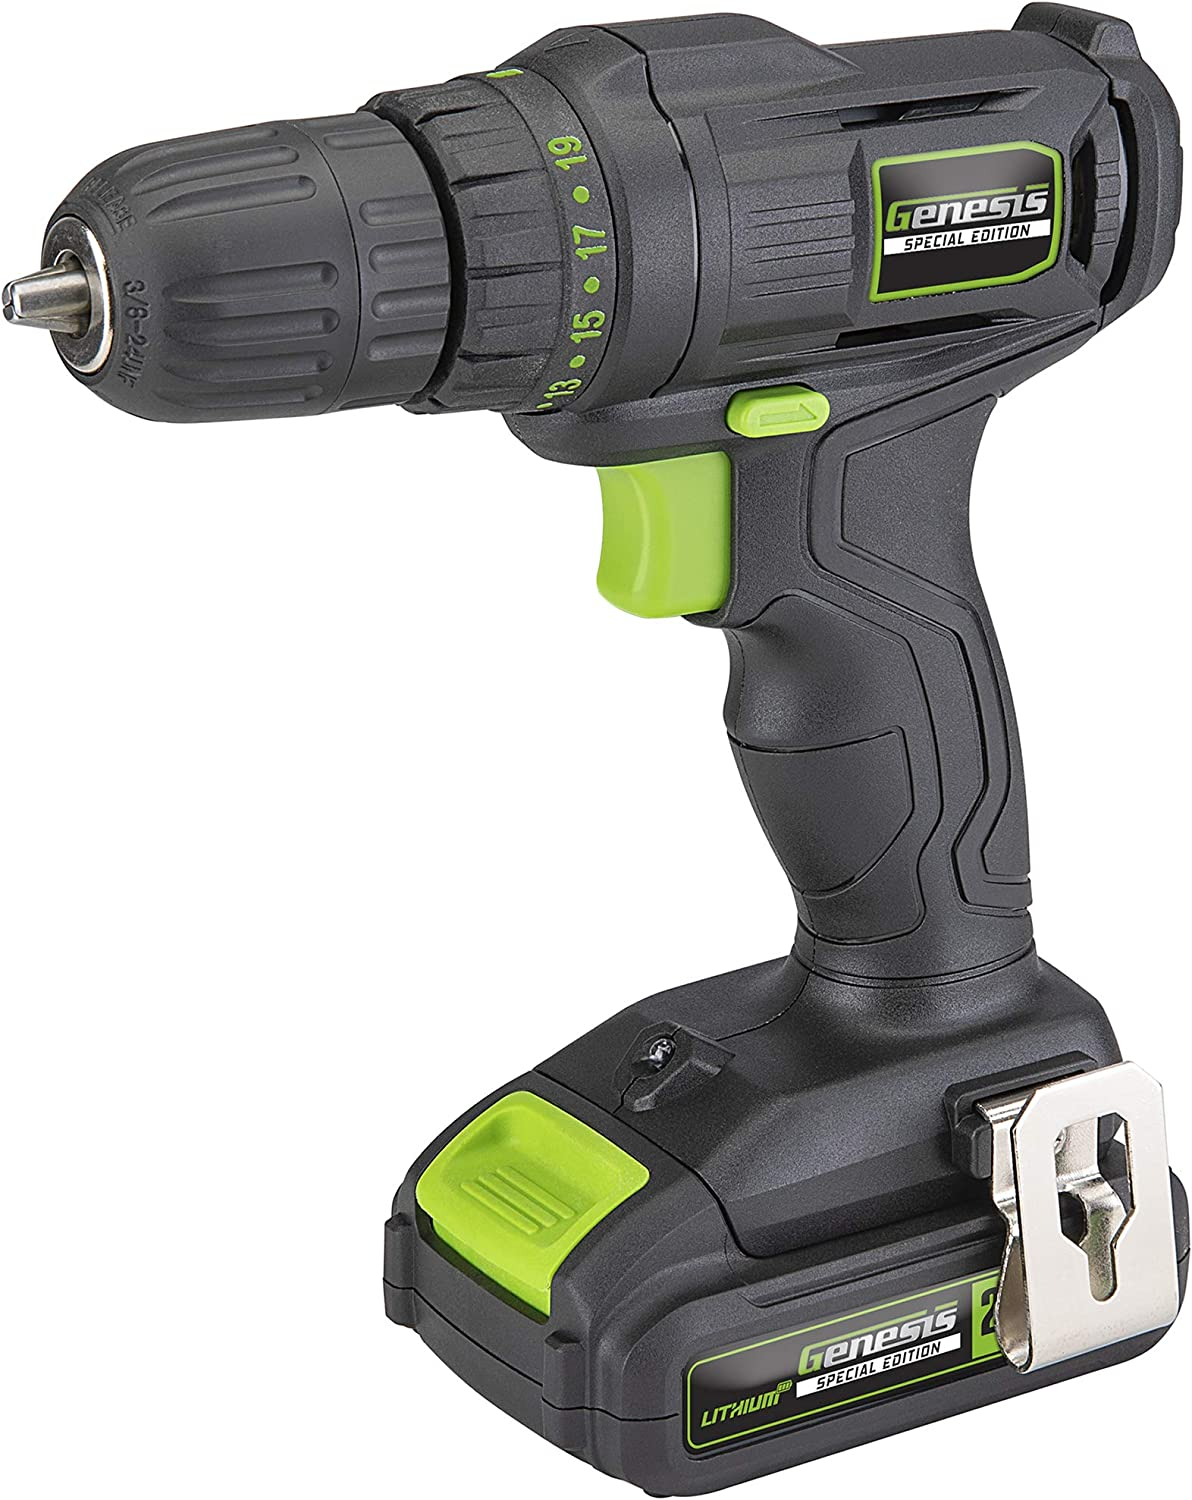 Genesis GLCD20CSE Special Edition 20V Lithium-Ion Cordless Drill/Driver with Built-in LED Light, Removable/Rechargeable Battery,